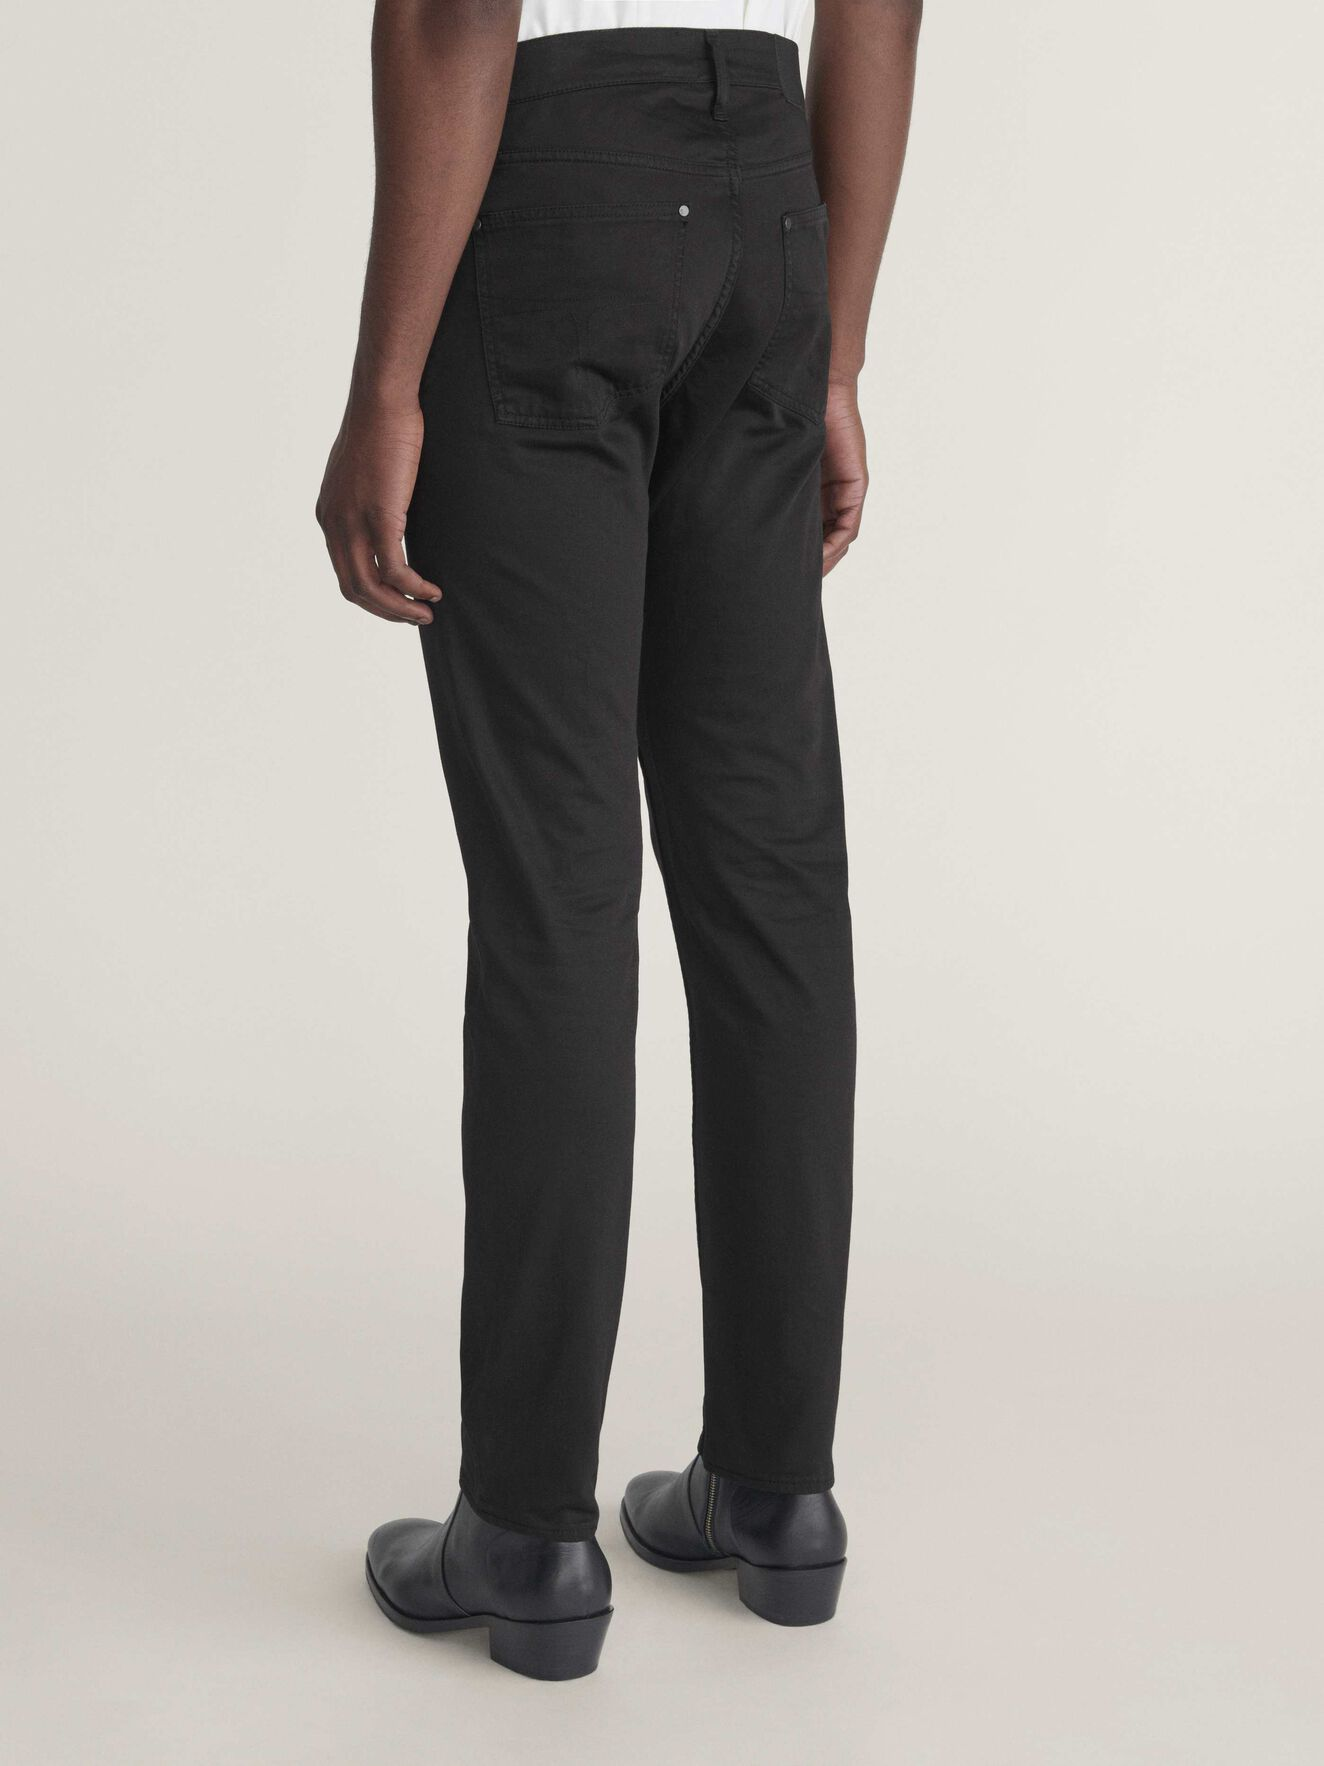 966ab3b388 ... Iggy Jeans in Black from Tiger of Sweden ...